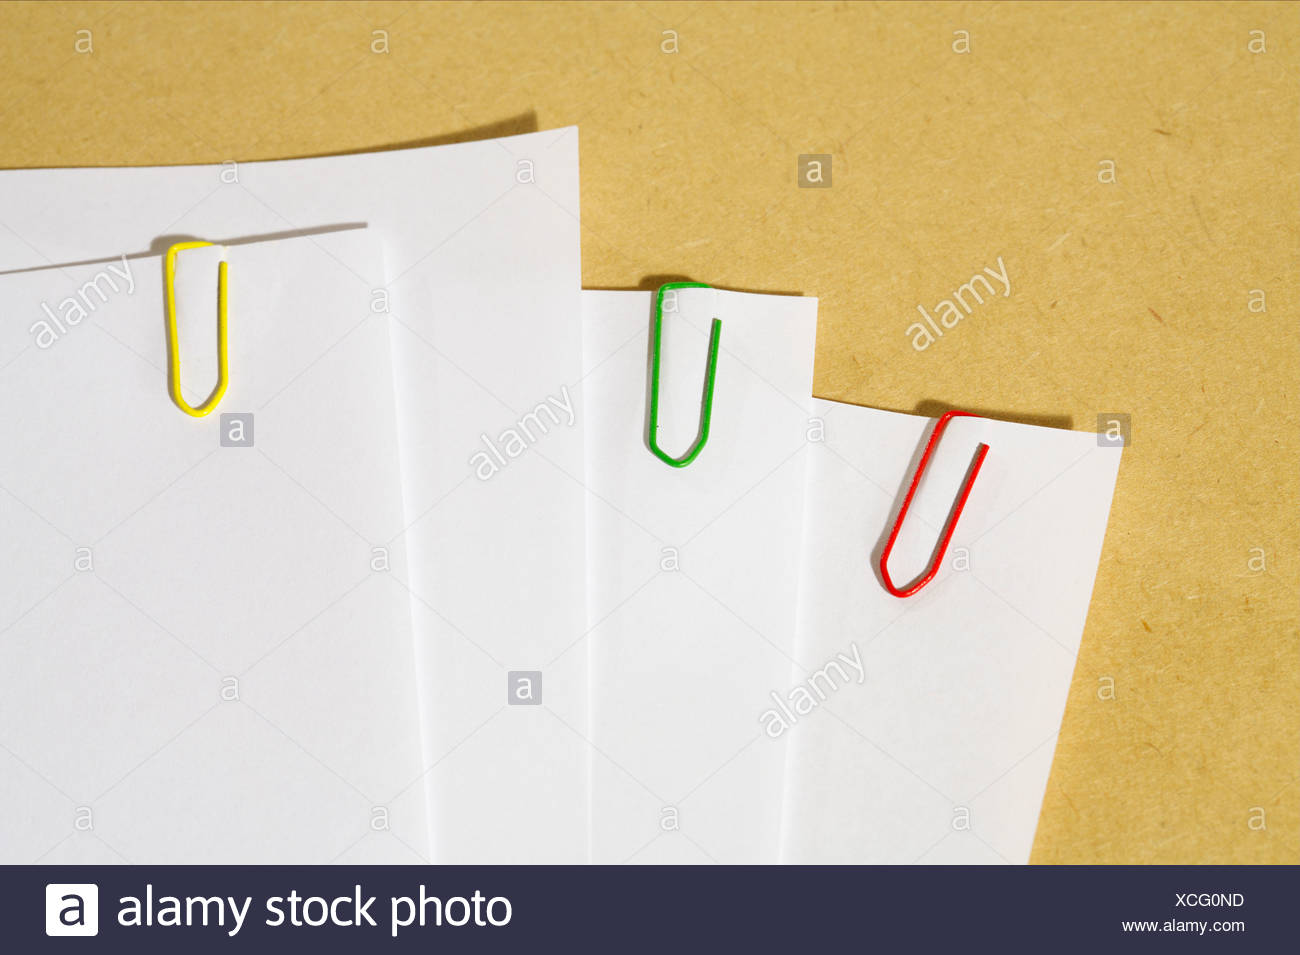 Colored paper clips on white piece of papers - Stock Image